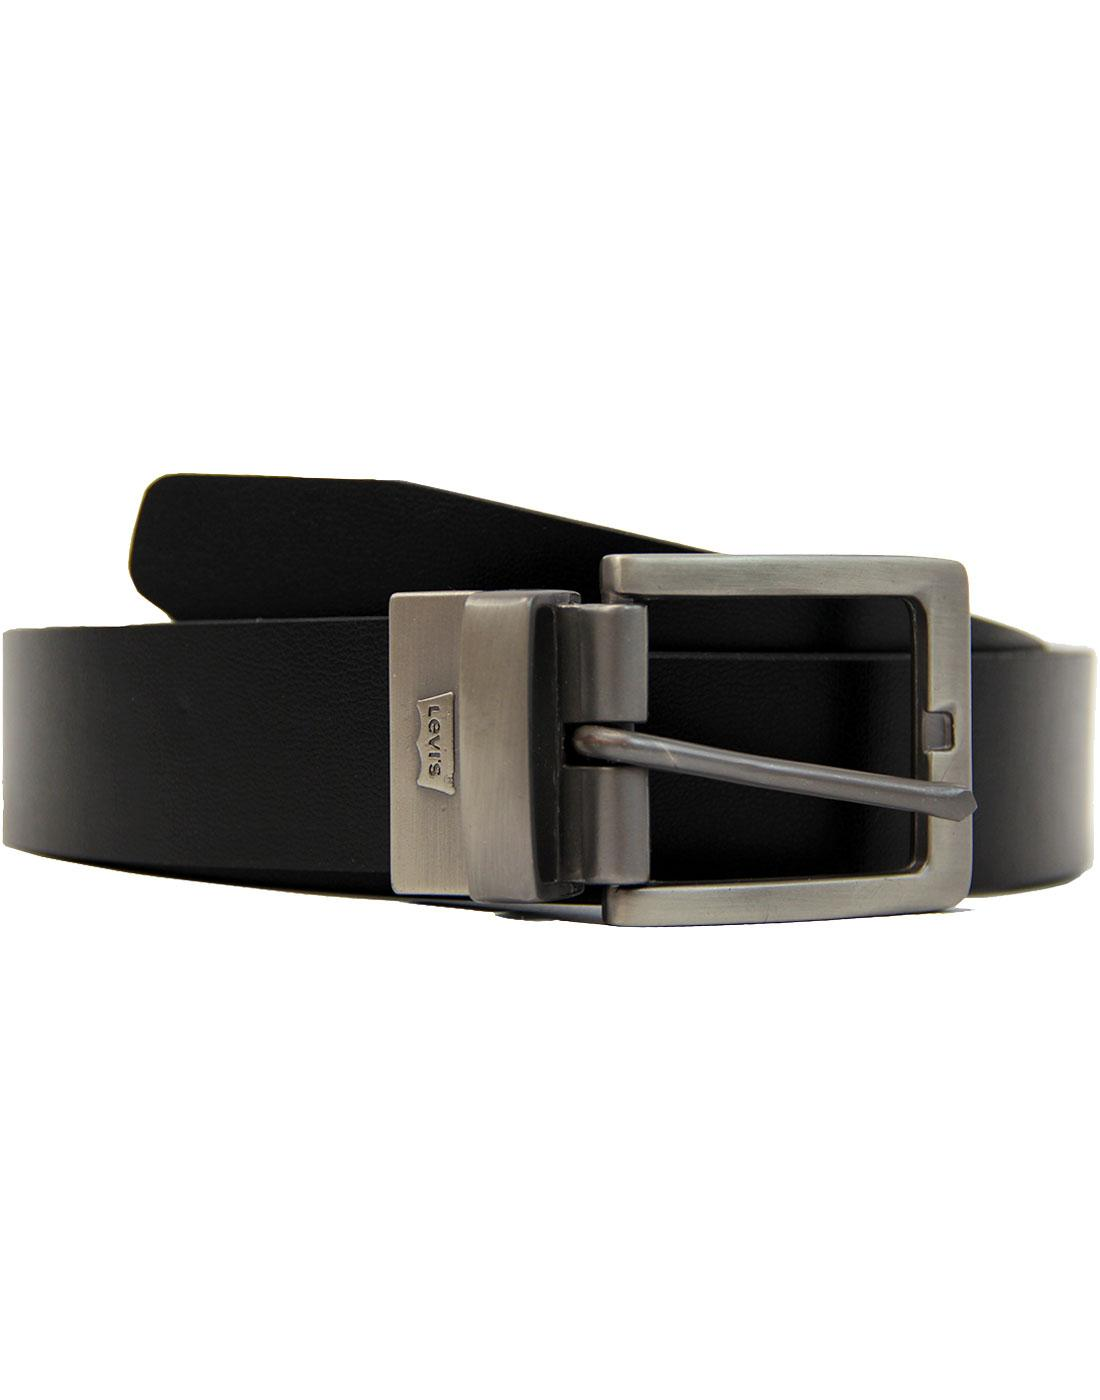 Big Bend LEVI'S® Indie Reversible Belt Black/Brown